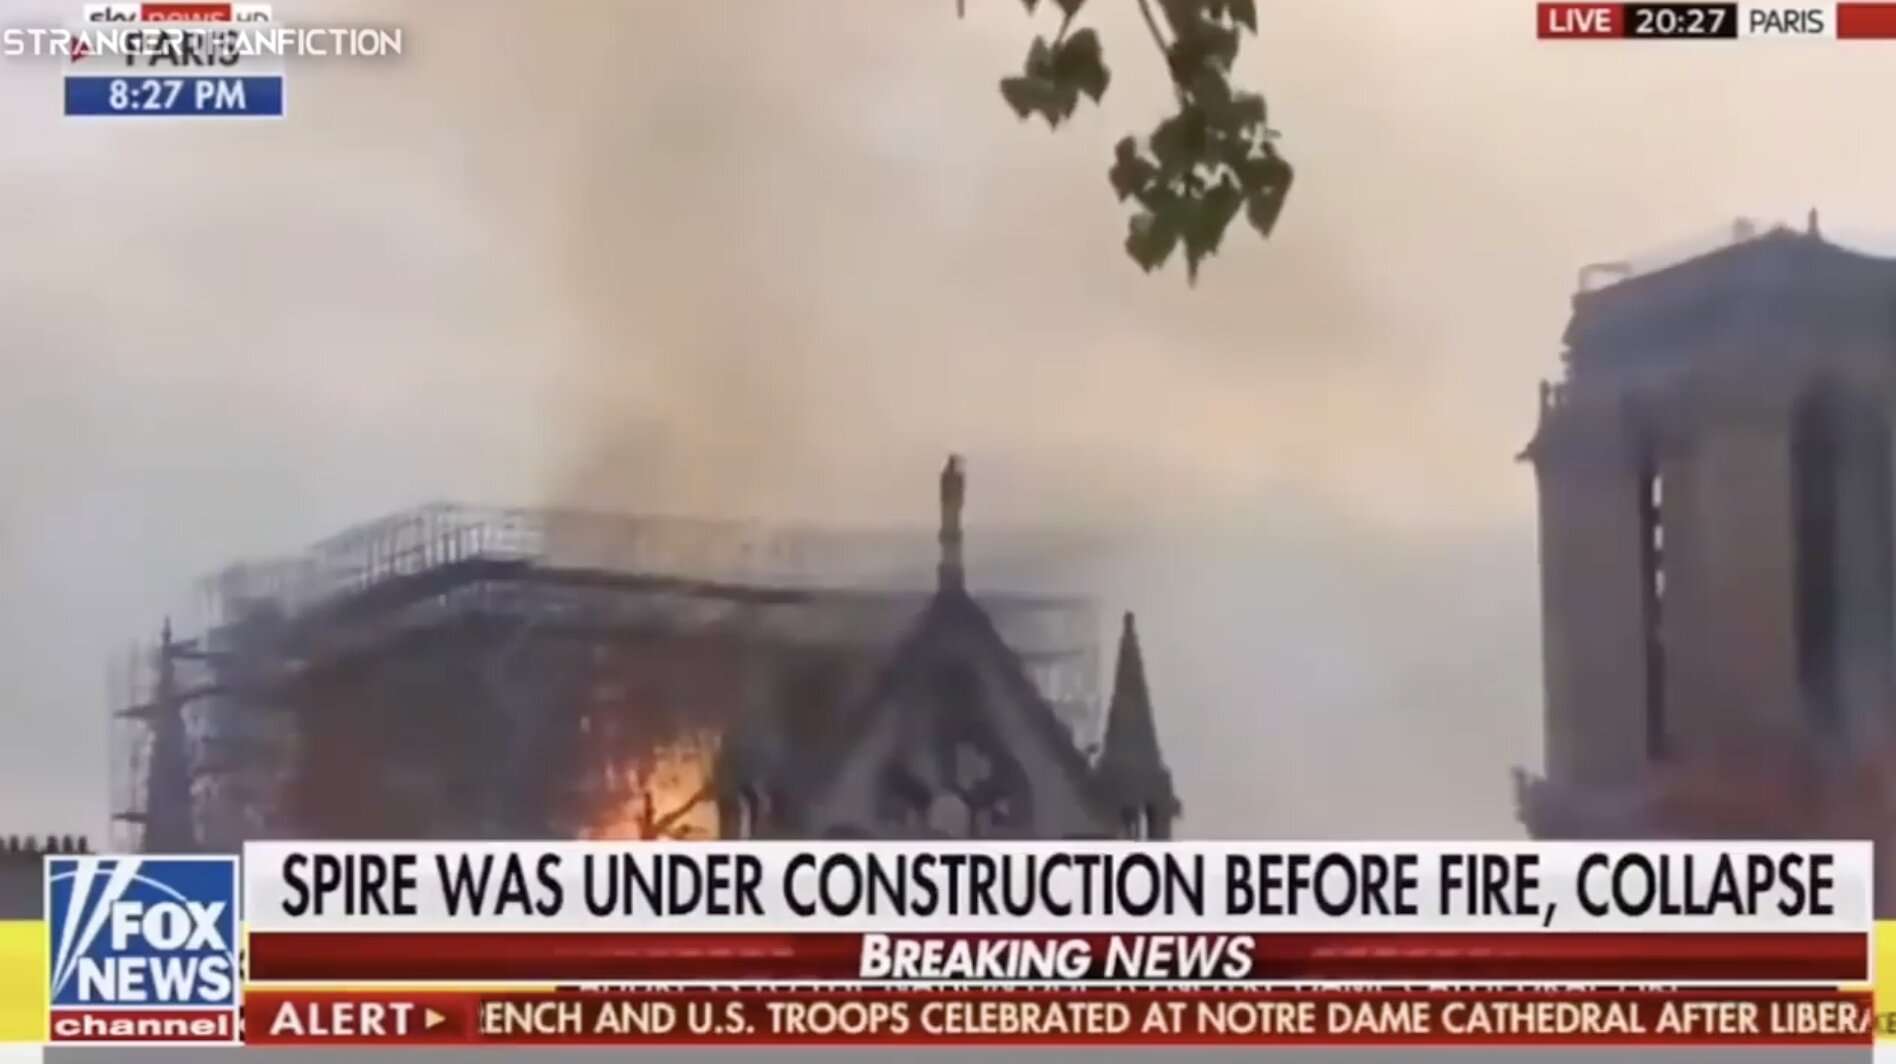 PROOF Notre Dame Fire Was NOT AN ACCIDENT (2019 – 2020)